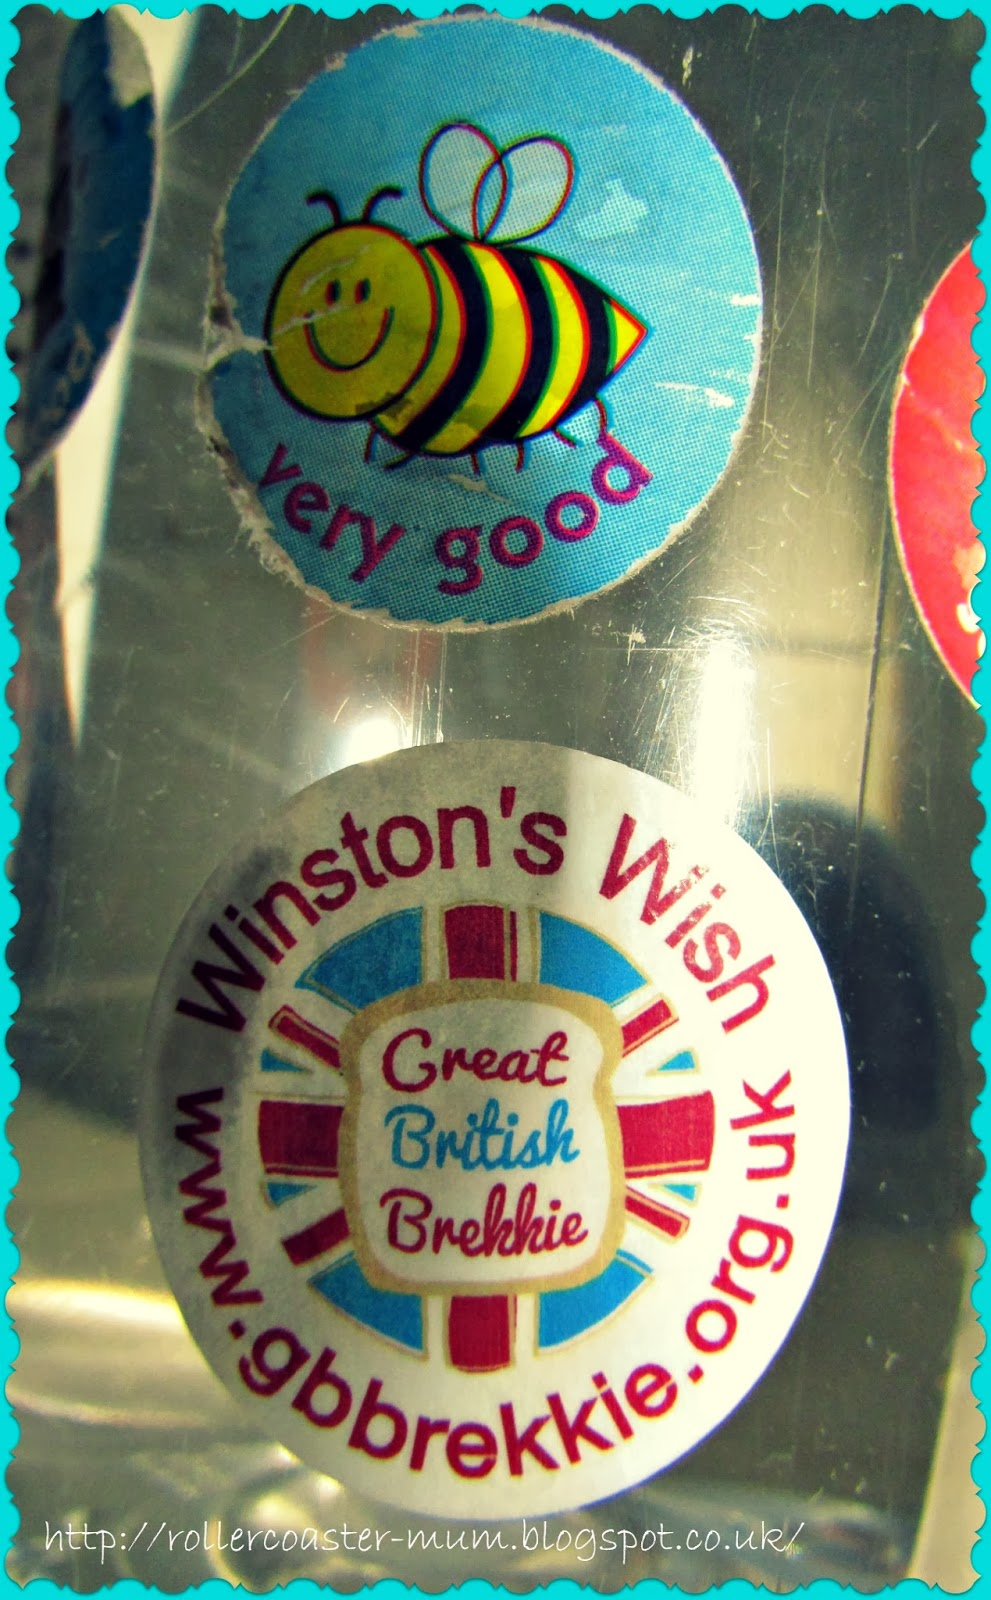 raising money for Winston's Wish with the Great British Brekkie